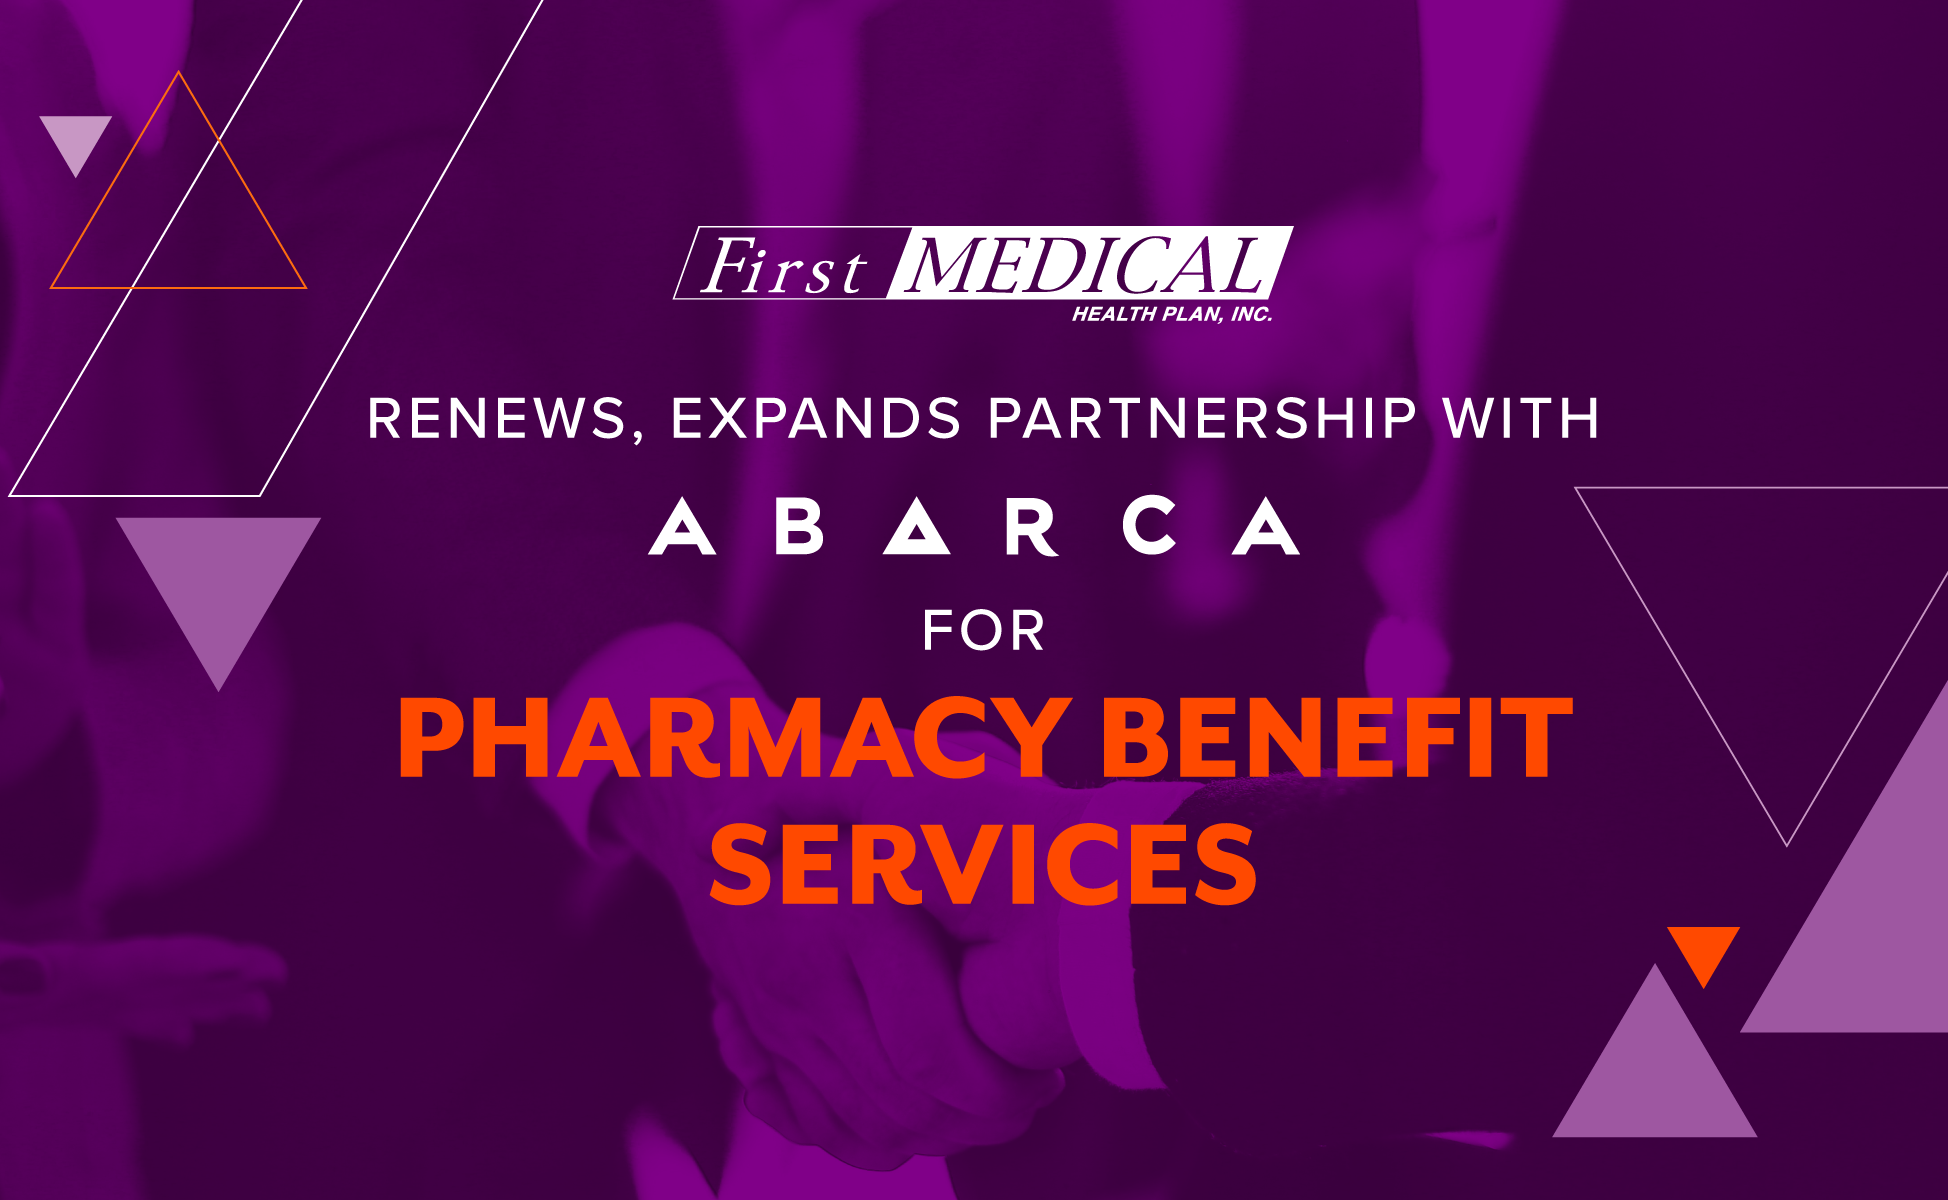 FIRST MEDICAL RENEWS & EXPANDS PARTNERSHIP WITH ABARCA FOR PHARMACY BENEFIT SERVICES